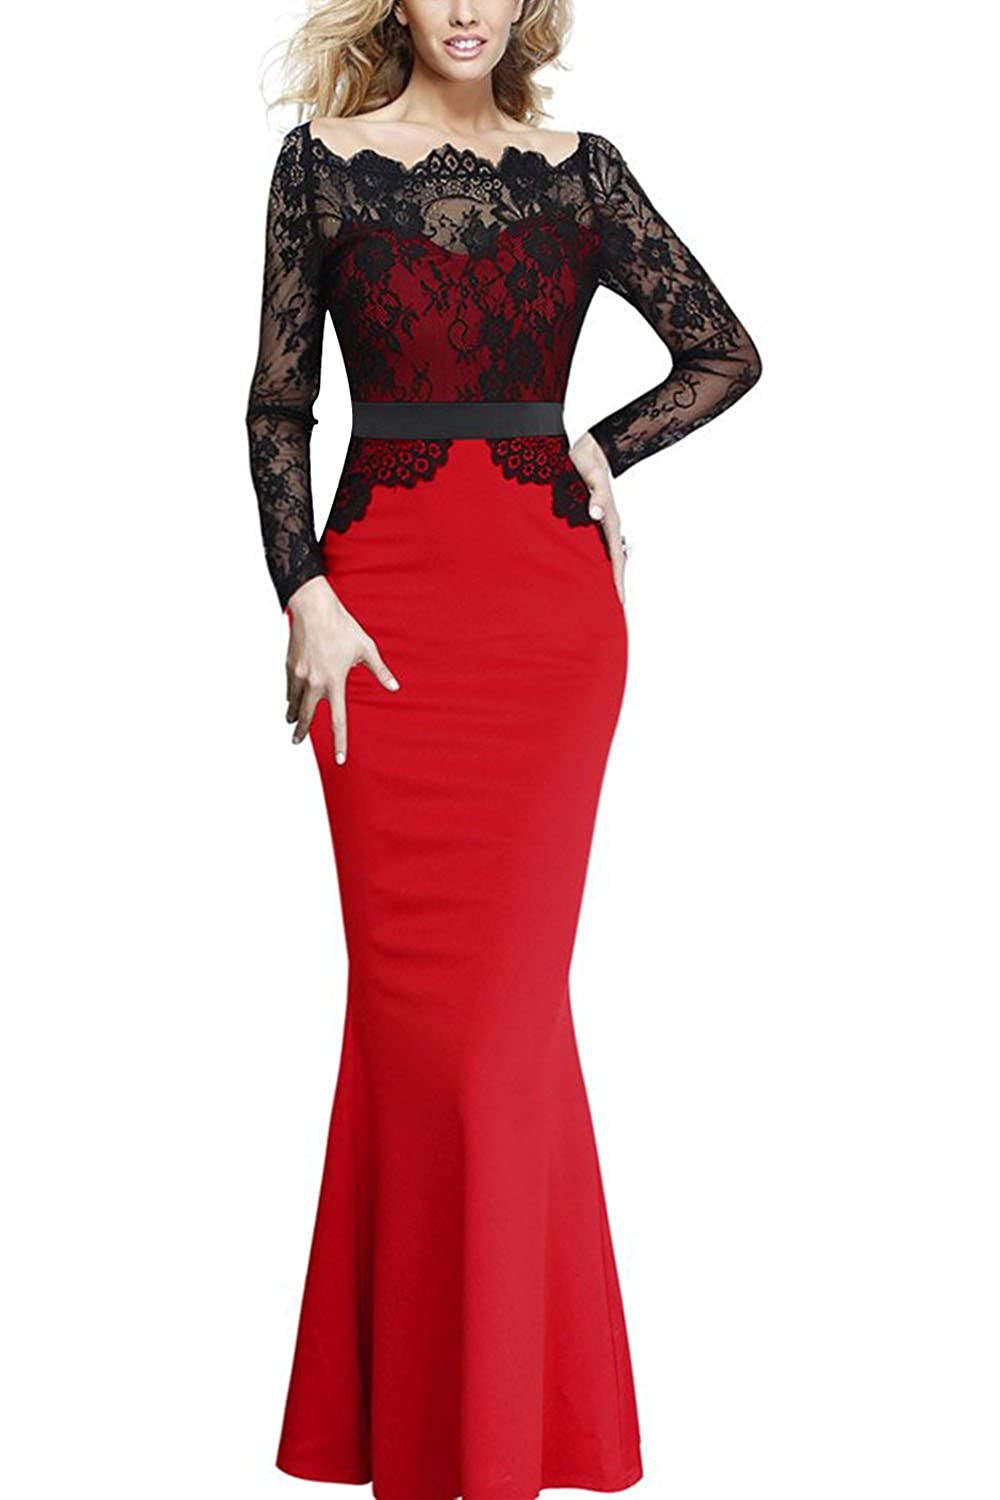 Amazon.com: Viwenni Women Lace Maxi Cocktail Party Evening Fromal ...